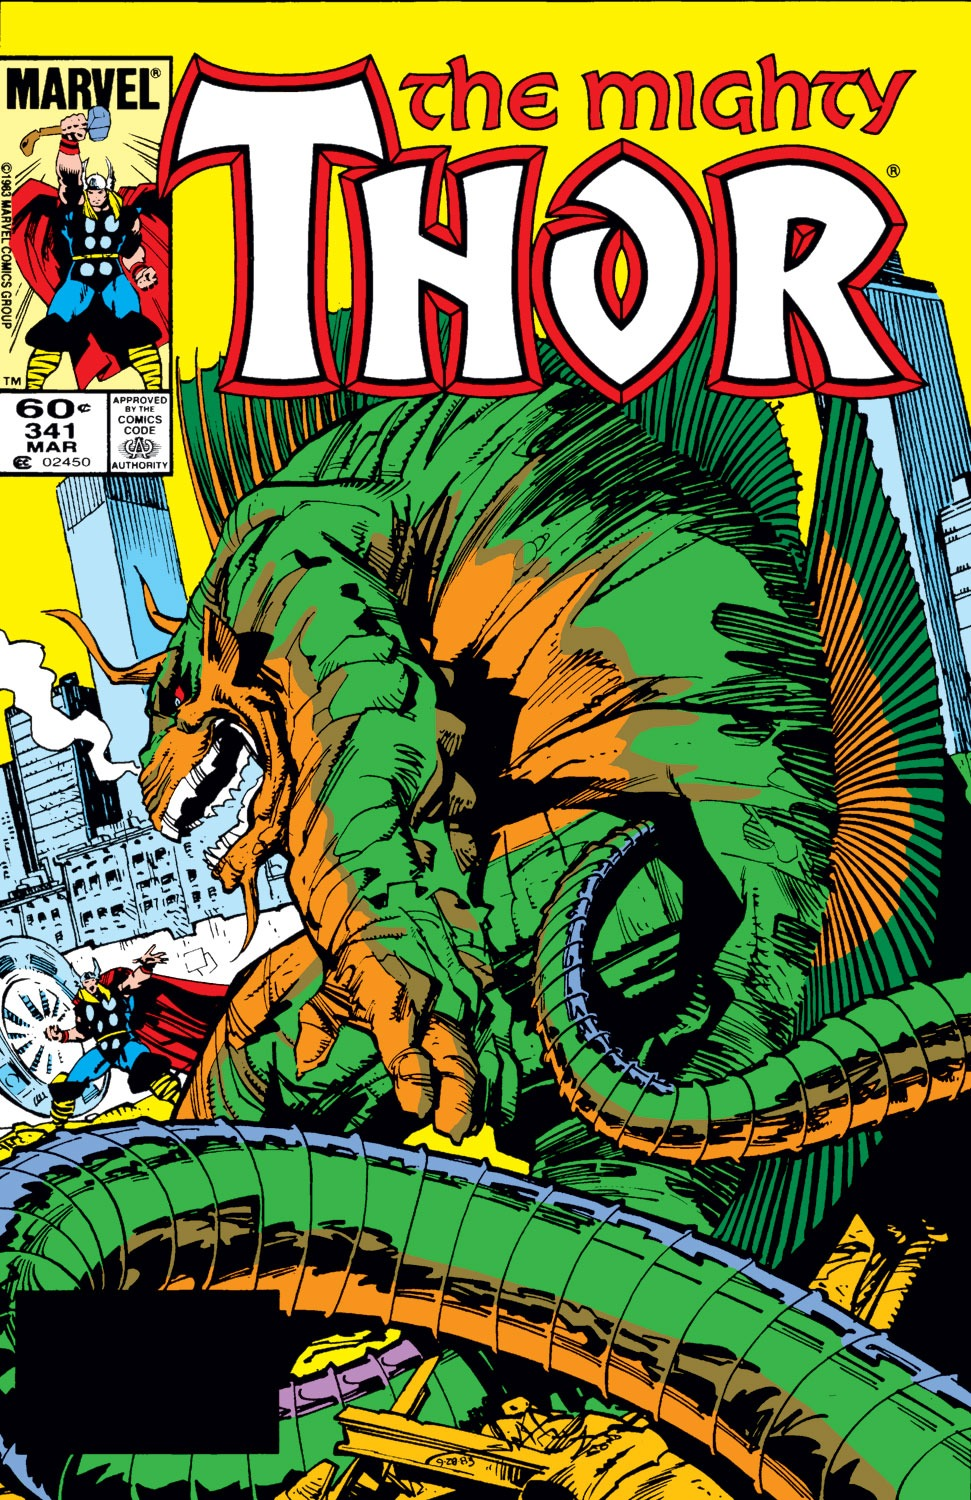 Thor (1966) 341 Page 1